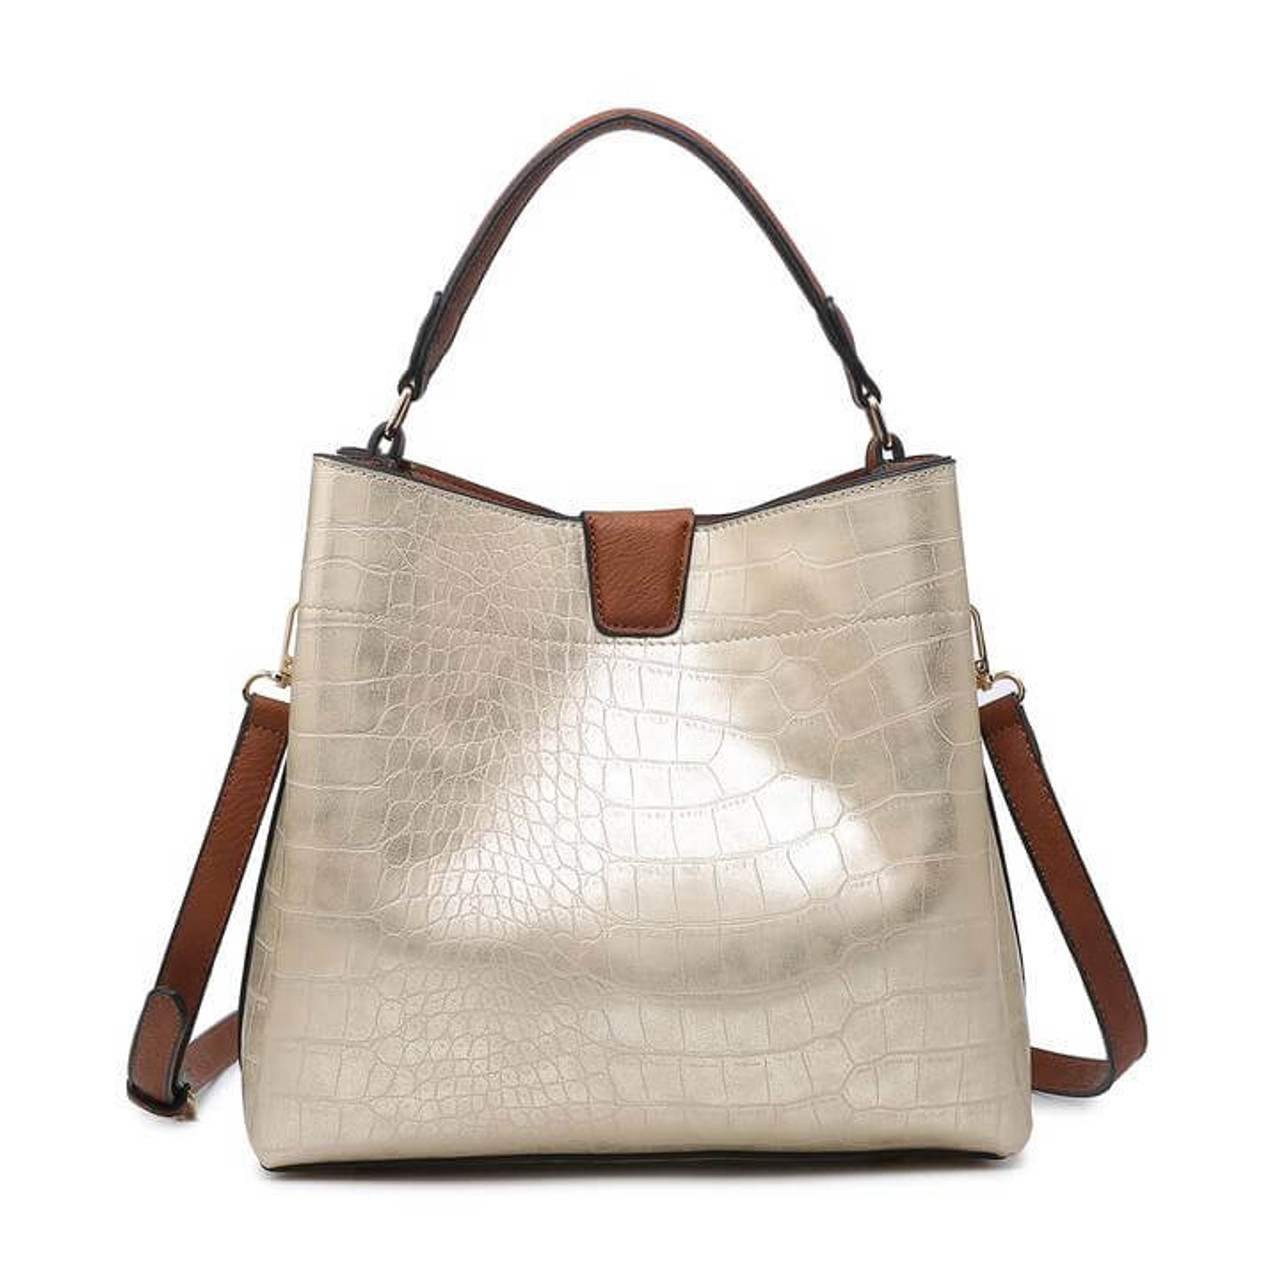 Tati croc champagne This satchel/hobo includes two compartments with inner slip and zip pockets and a magnetic snap closure. An adjustable/detachable shoulder strap is included.